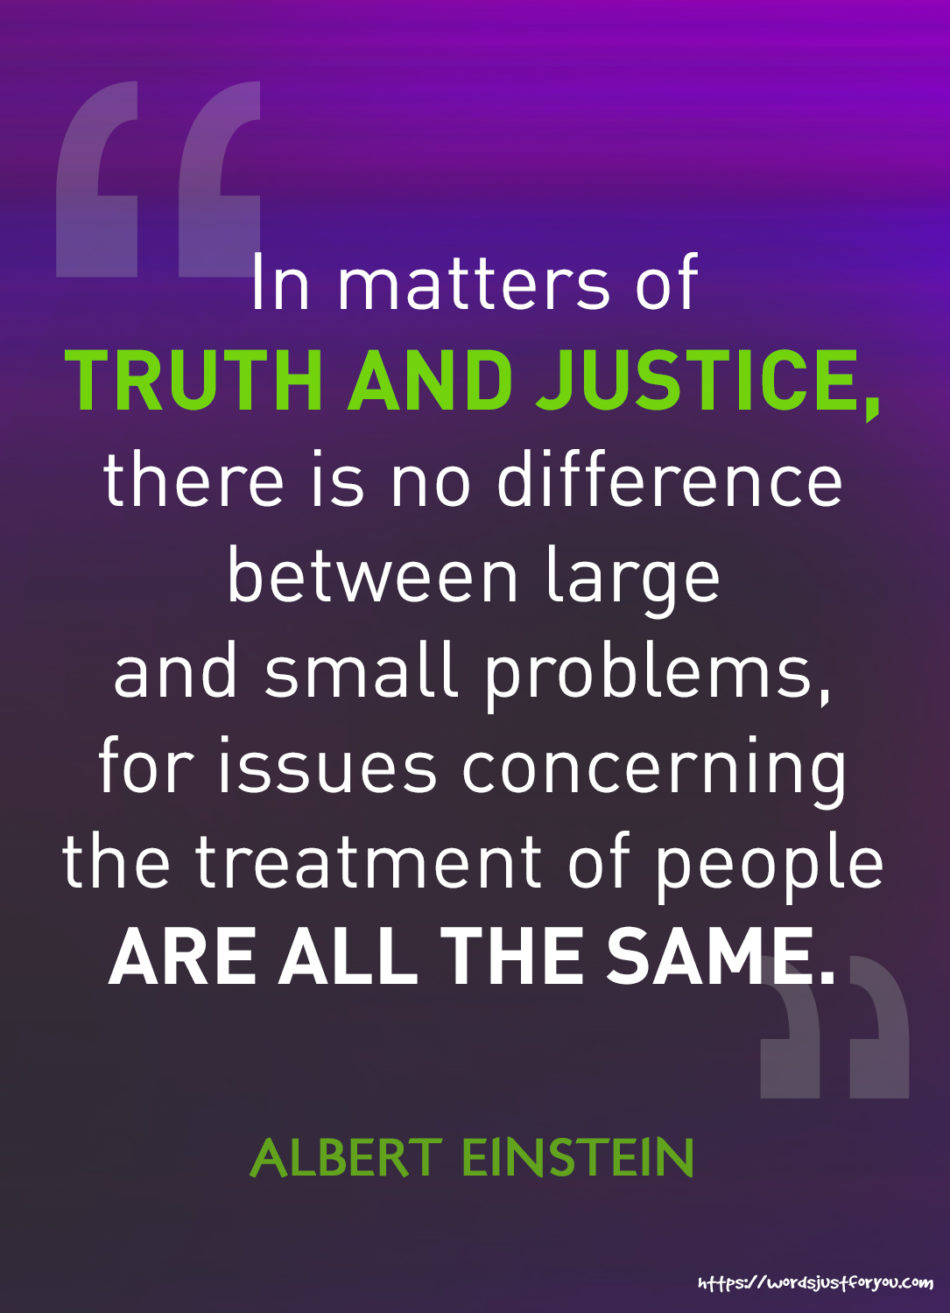 Famous Quotes by Albert Einstein about Truth and Justice